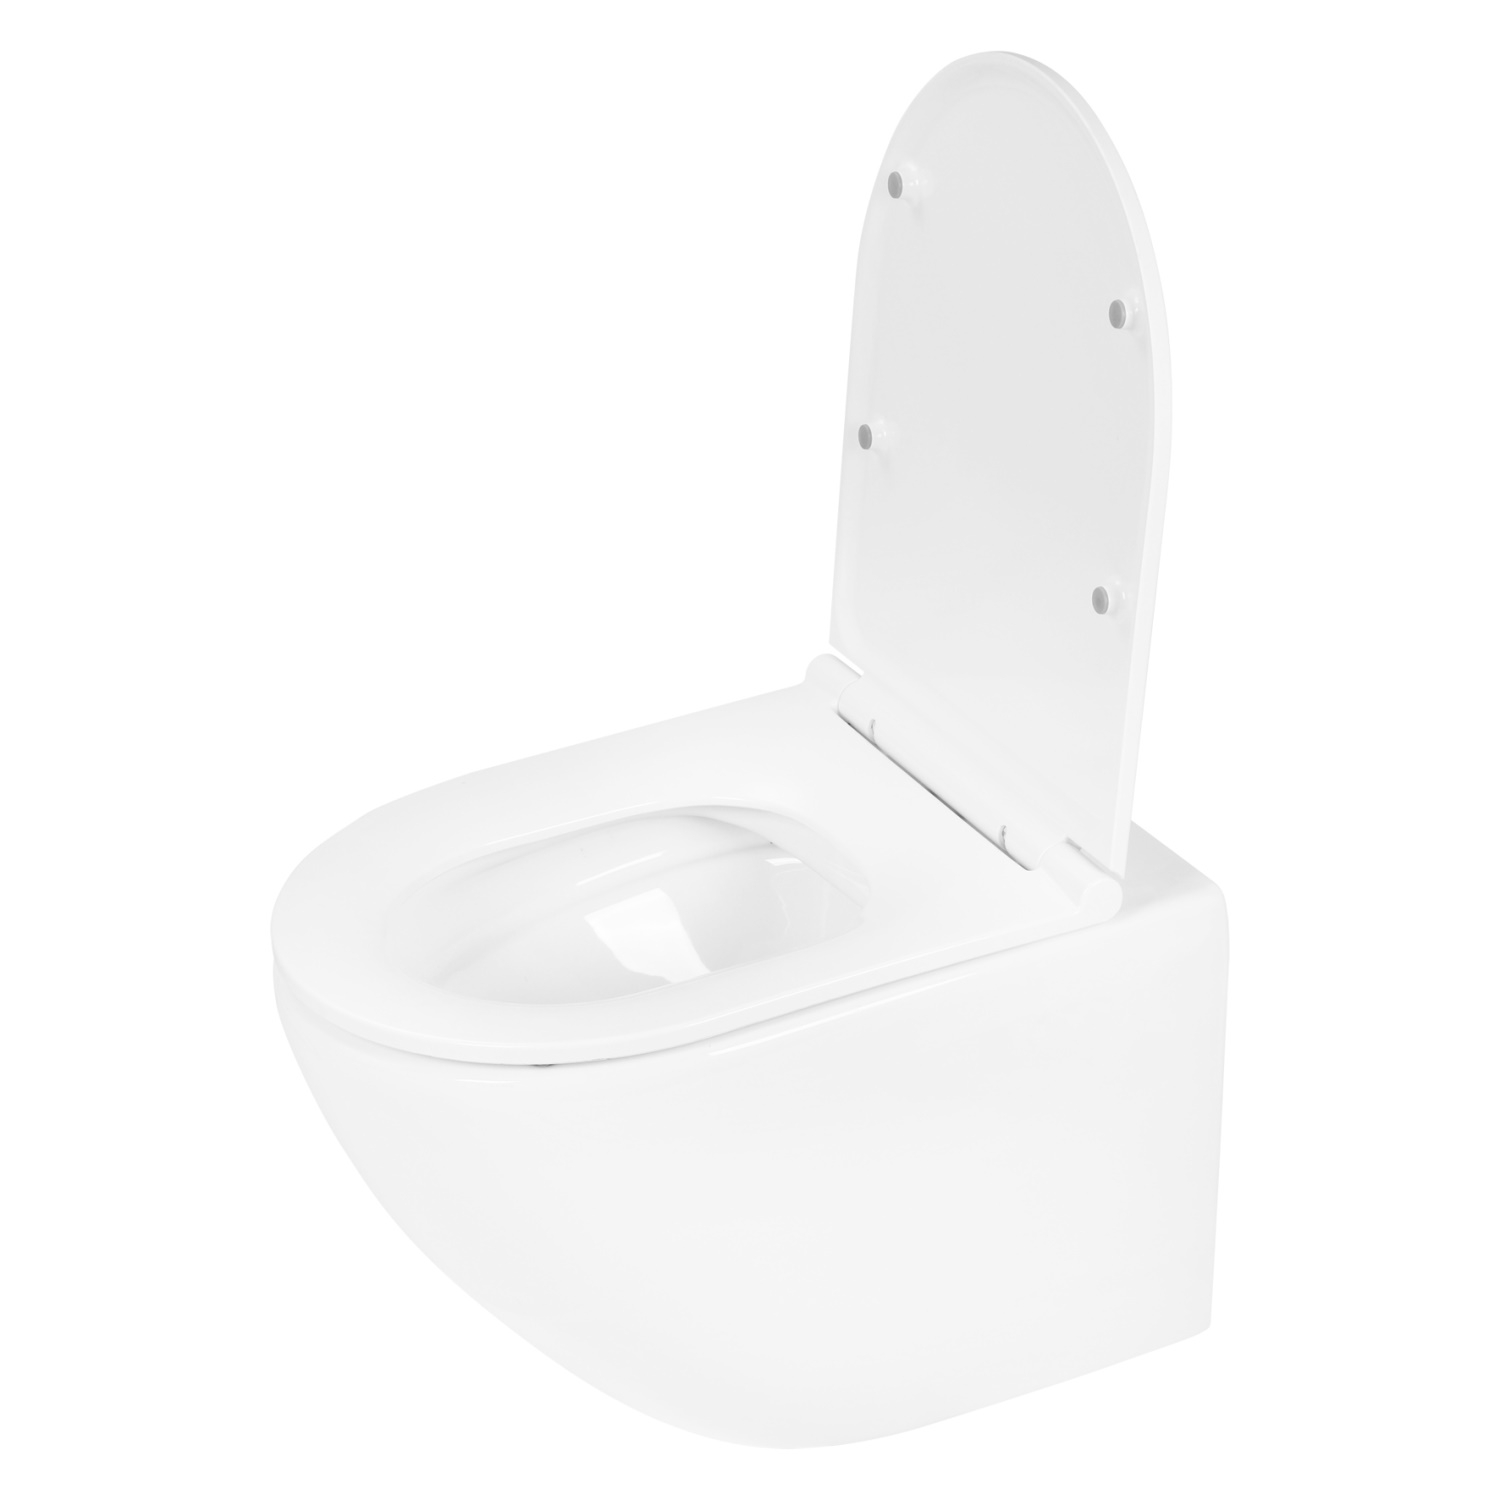 Wandtoilet Differnz Met PK Uitgang Rimless Inclusief Toiletbril Glans Wit